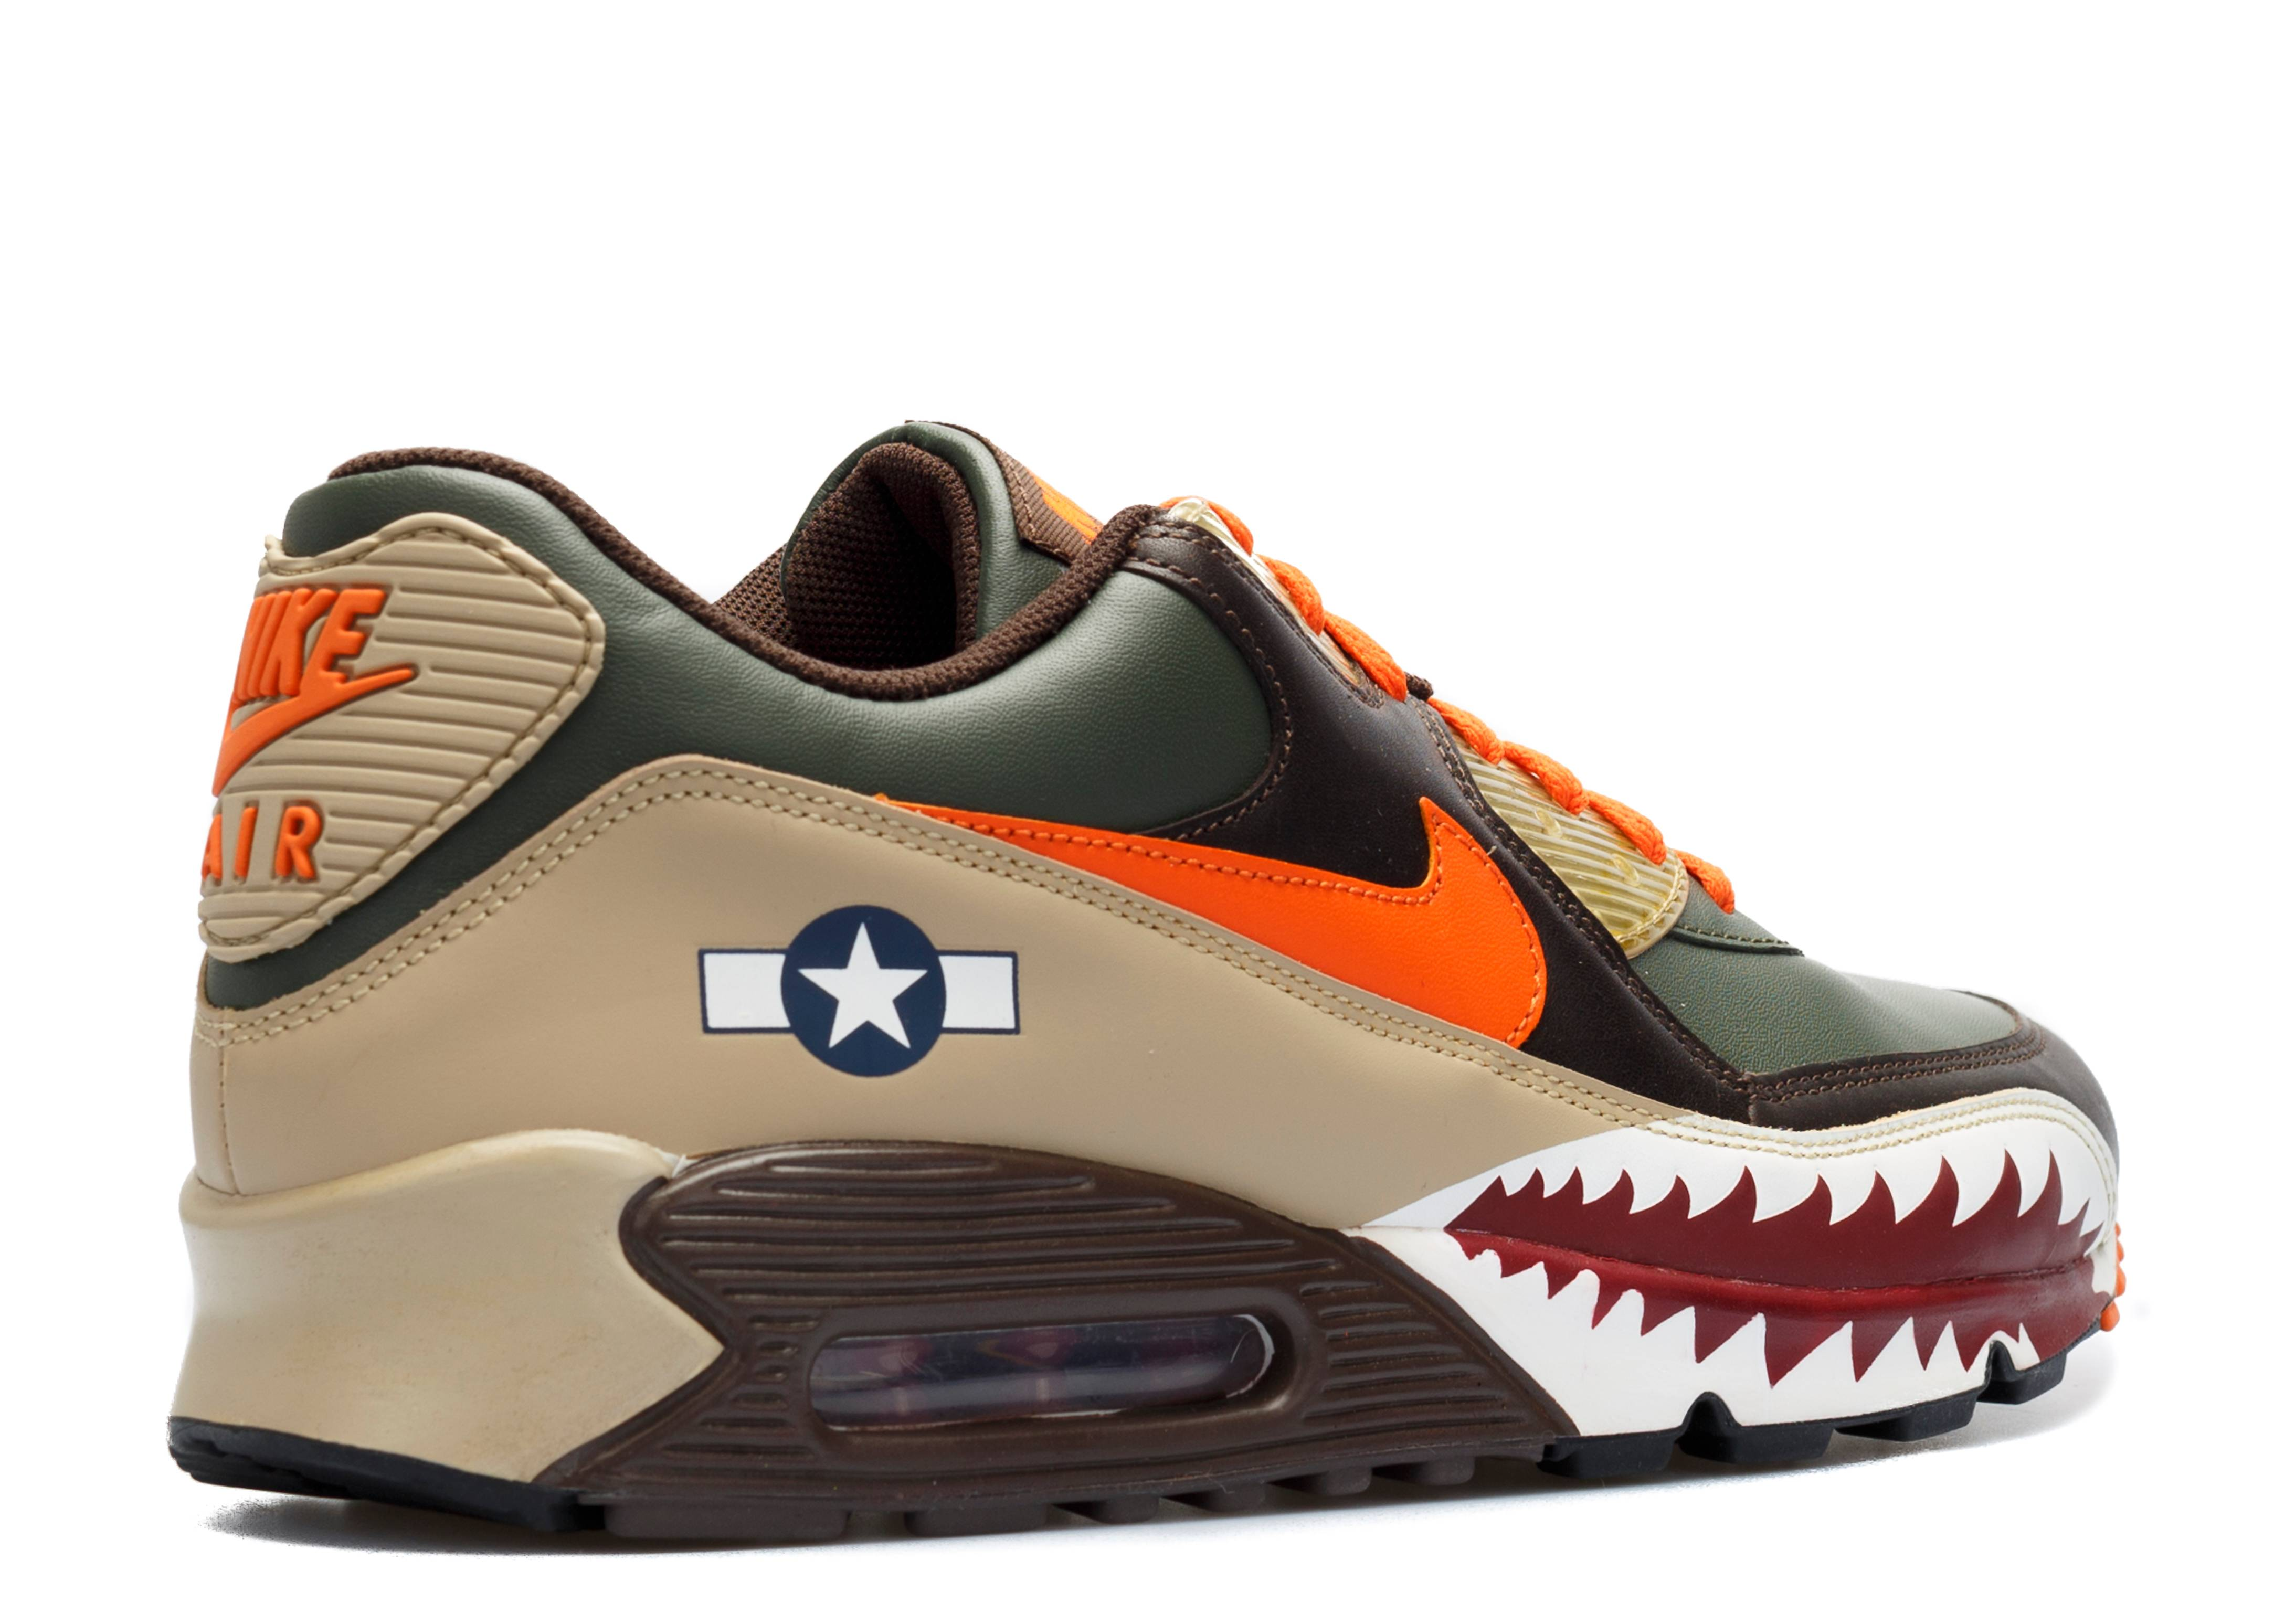 Escupir Mejor alcanzar  Air Max 90 Premium 'Warhawk' - Nike - 315728 381 - dark army/orange  blaze/dark cinder/tweed | Flight Club